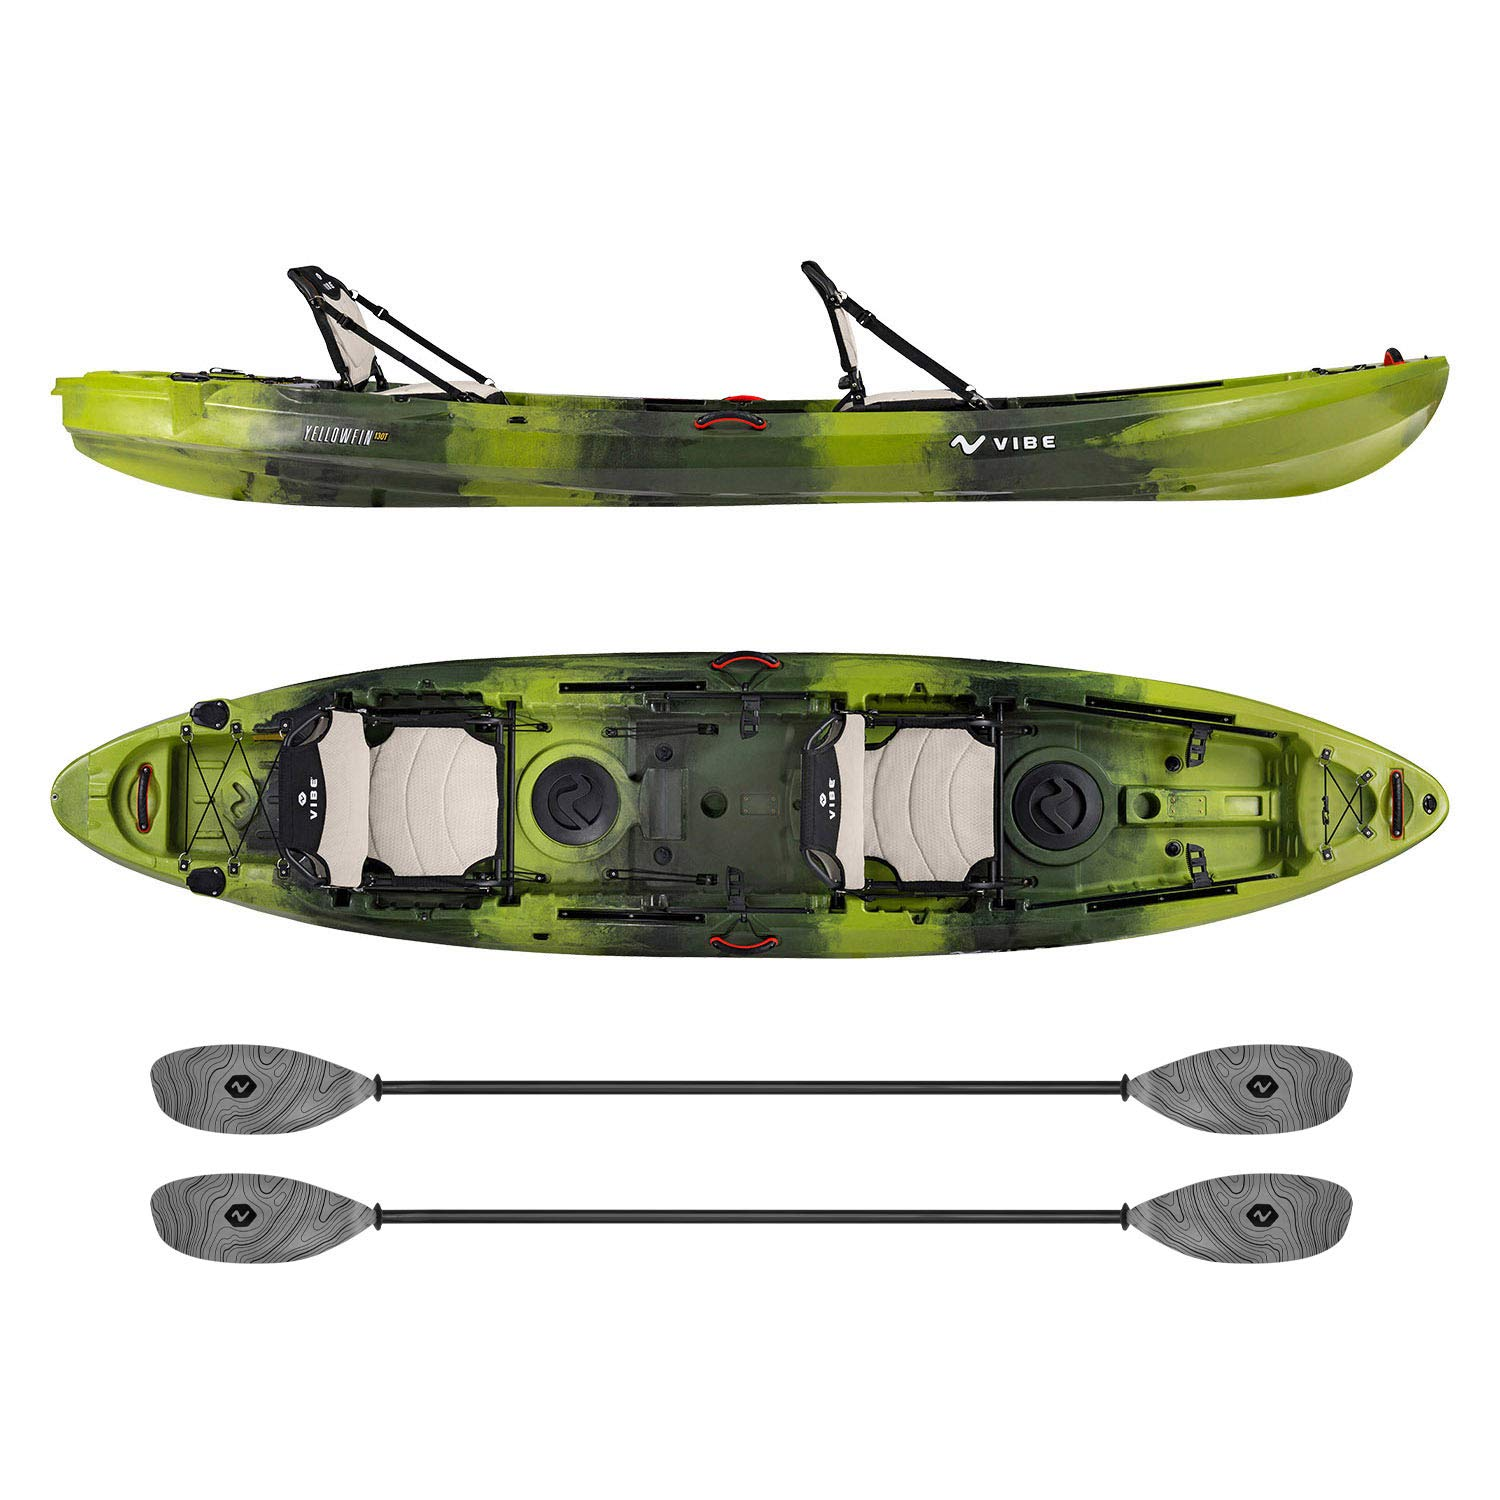 Vibe Kayaks Yellowfin 130T | 13 Foot | Tandem Angler and Recreational Two Person Sit On Top Fishing Kayak with 2 Paddles and 2 Hero Comfort Seats (Moss Camo - Smoke Gray Evolve Paddle)